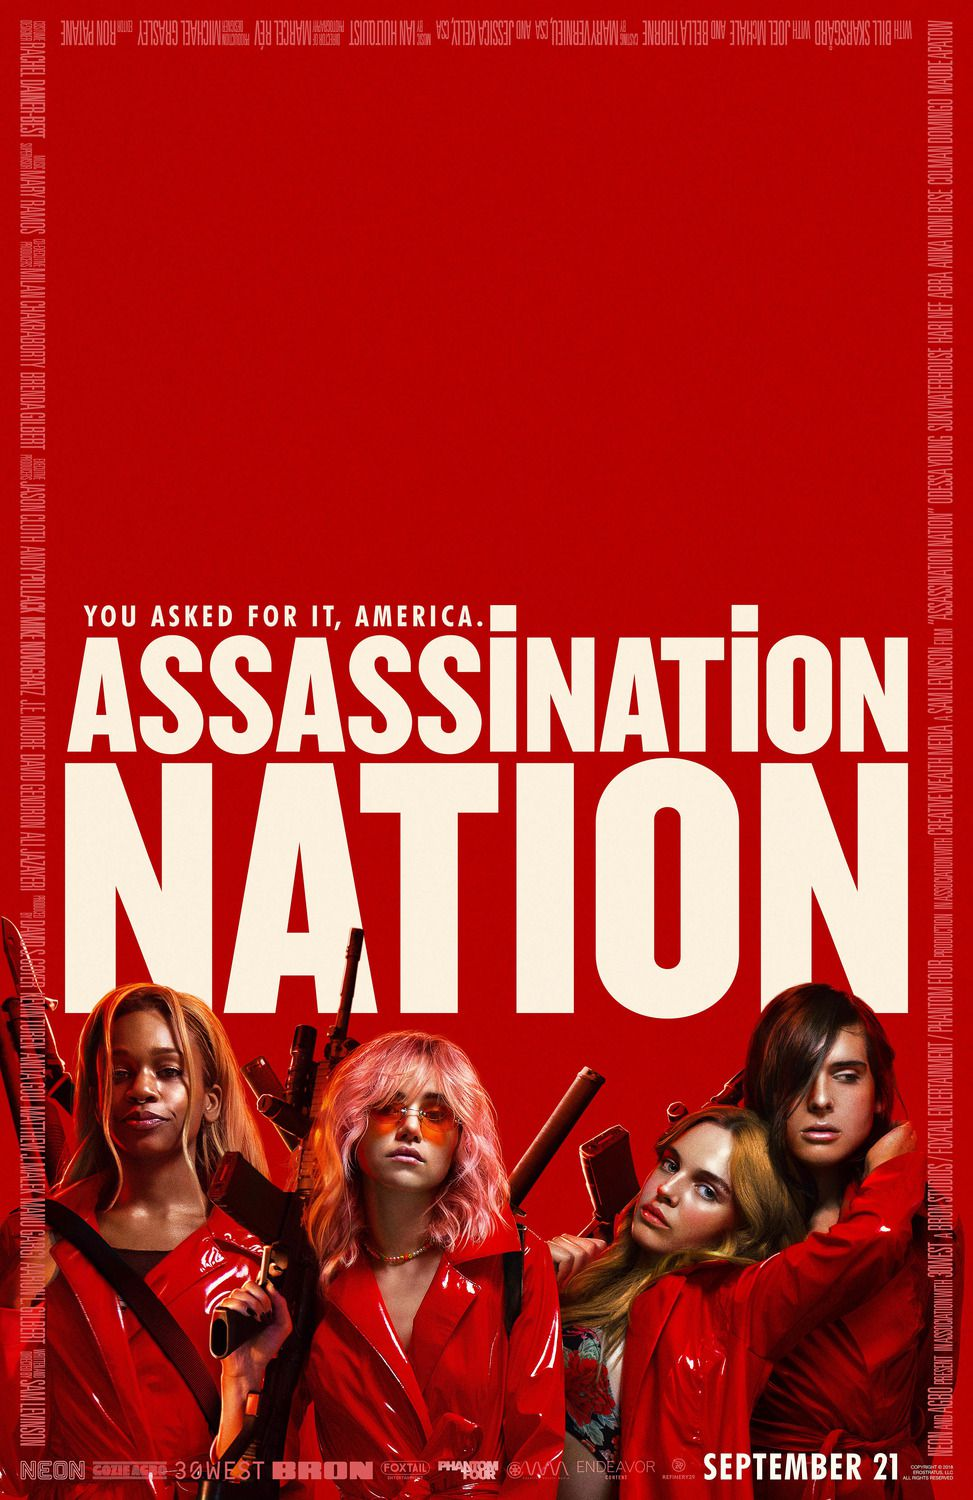 Assassination Nation (2018) - Cast: Odessa Young, Hari Nef, Abra, Suki Waterhouse - film poster